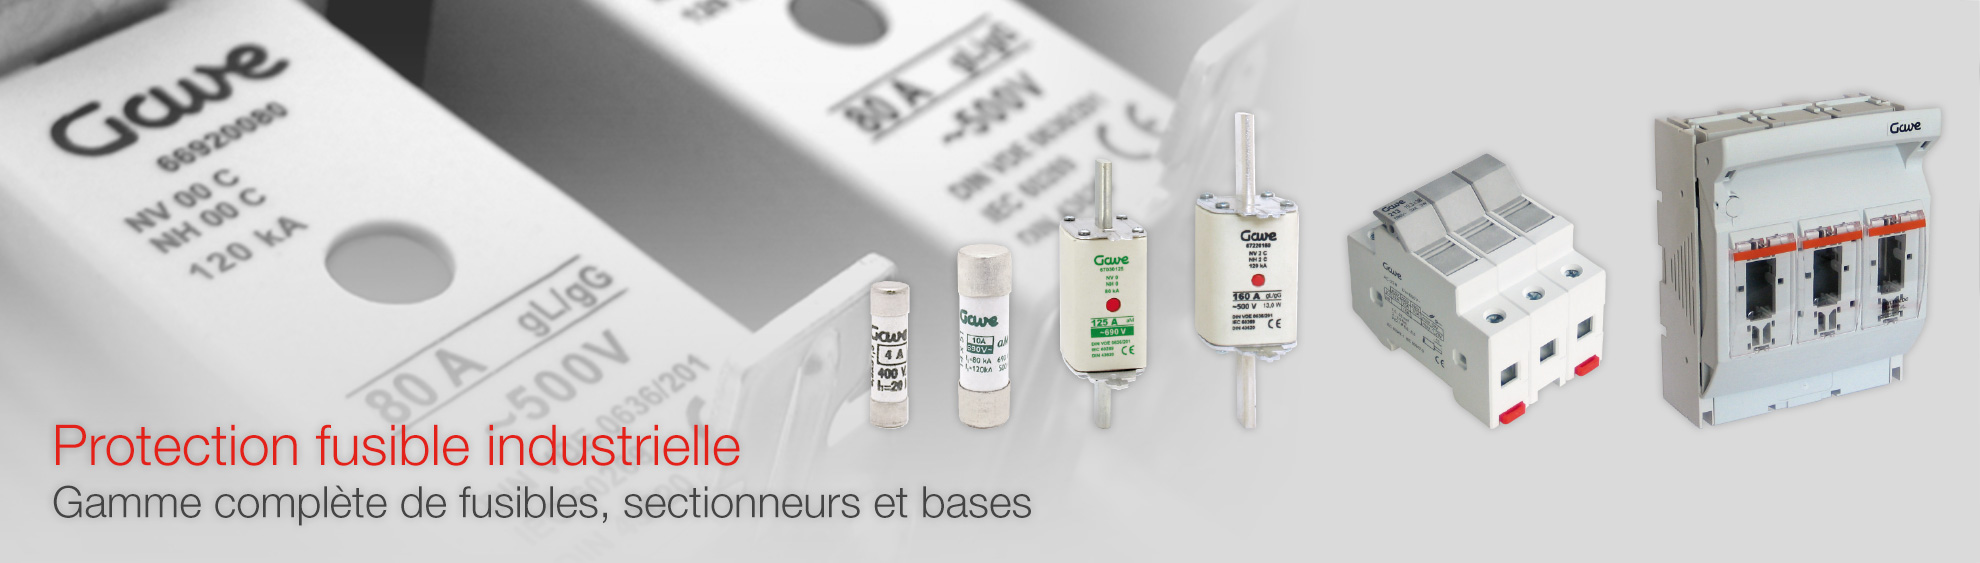 Protection fusible industrielle